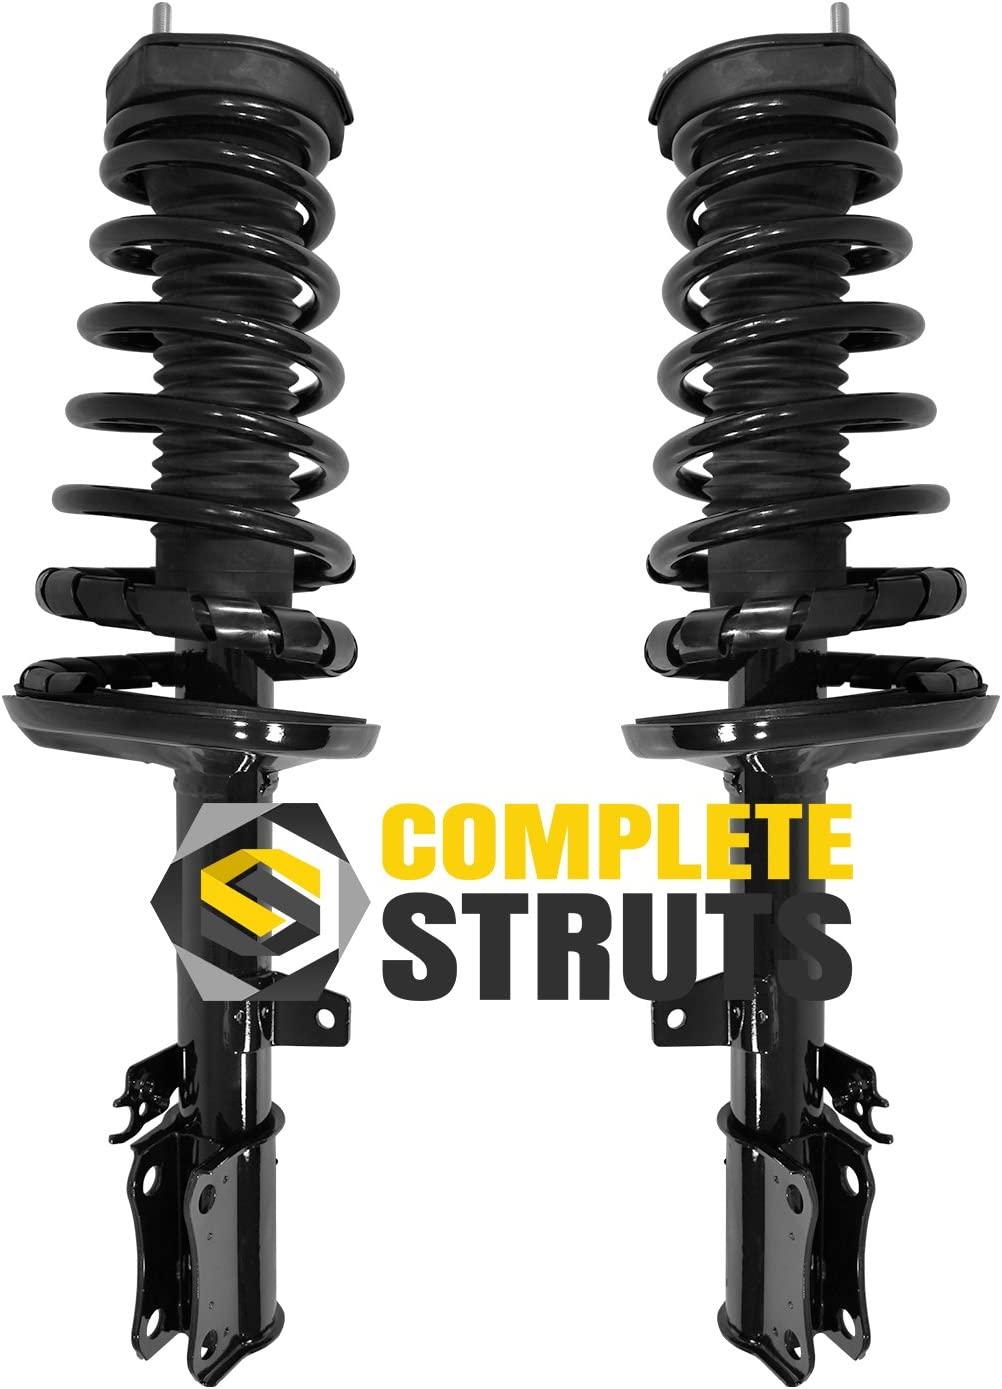 Rear Left Quick Complete Strut /& Spring Assembly for 1992-1996 Toyota Camry